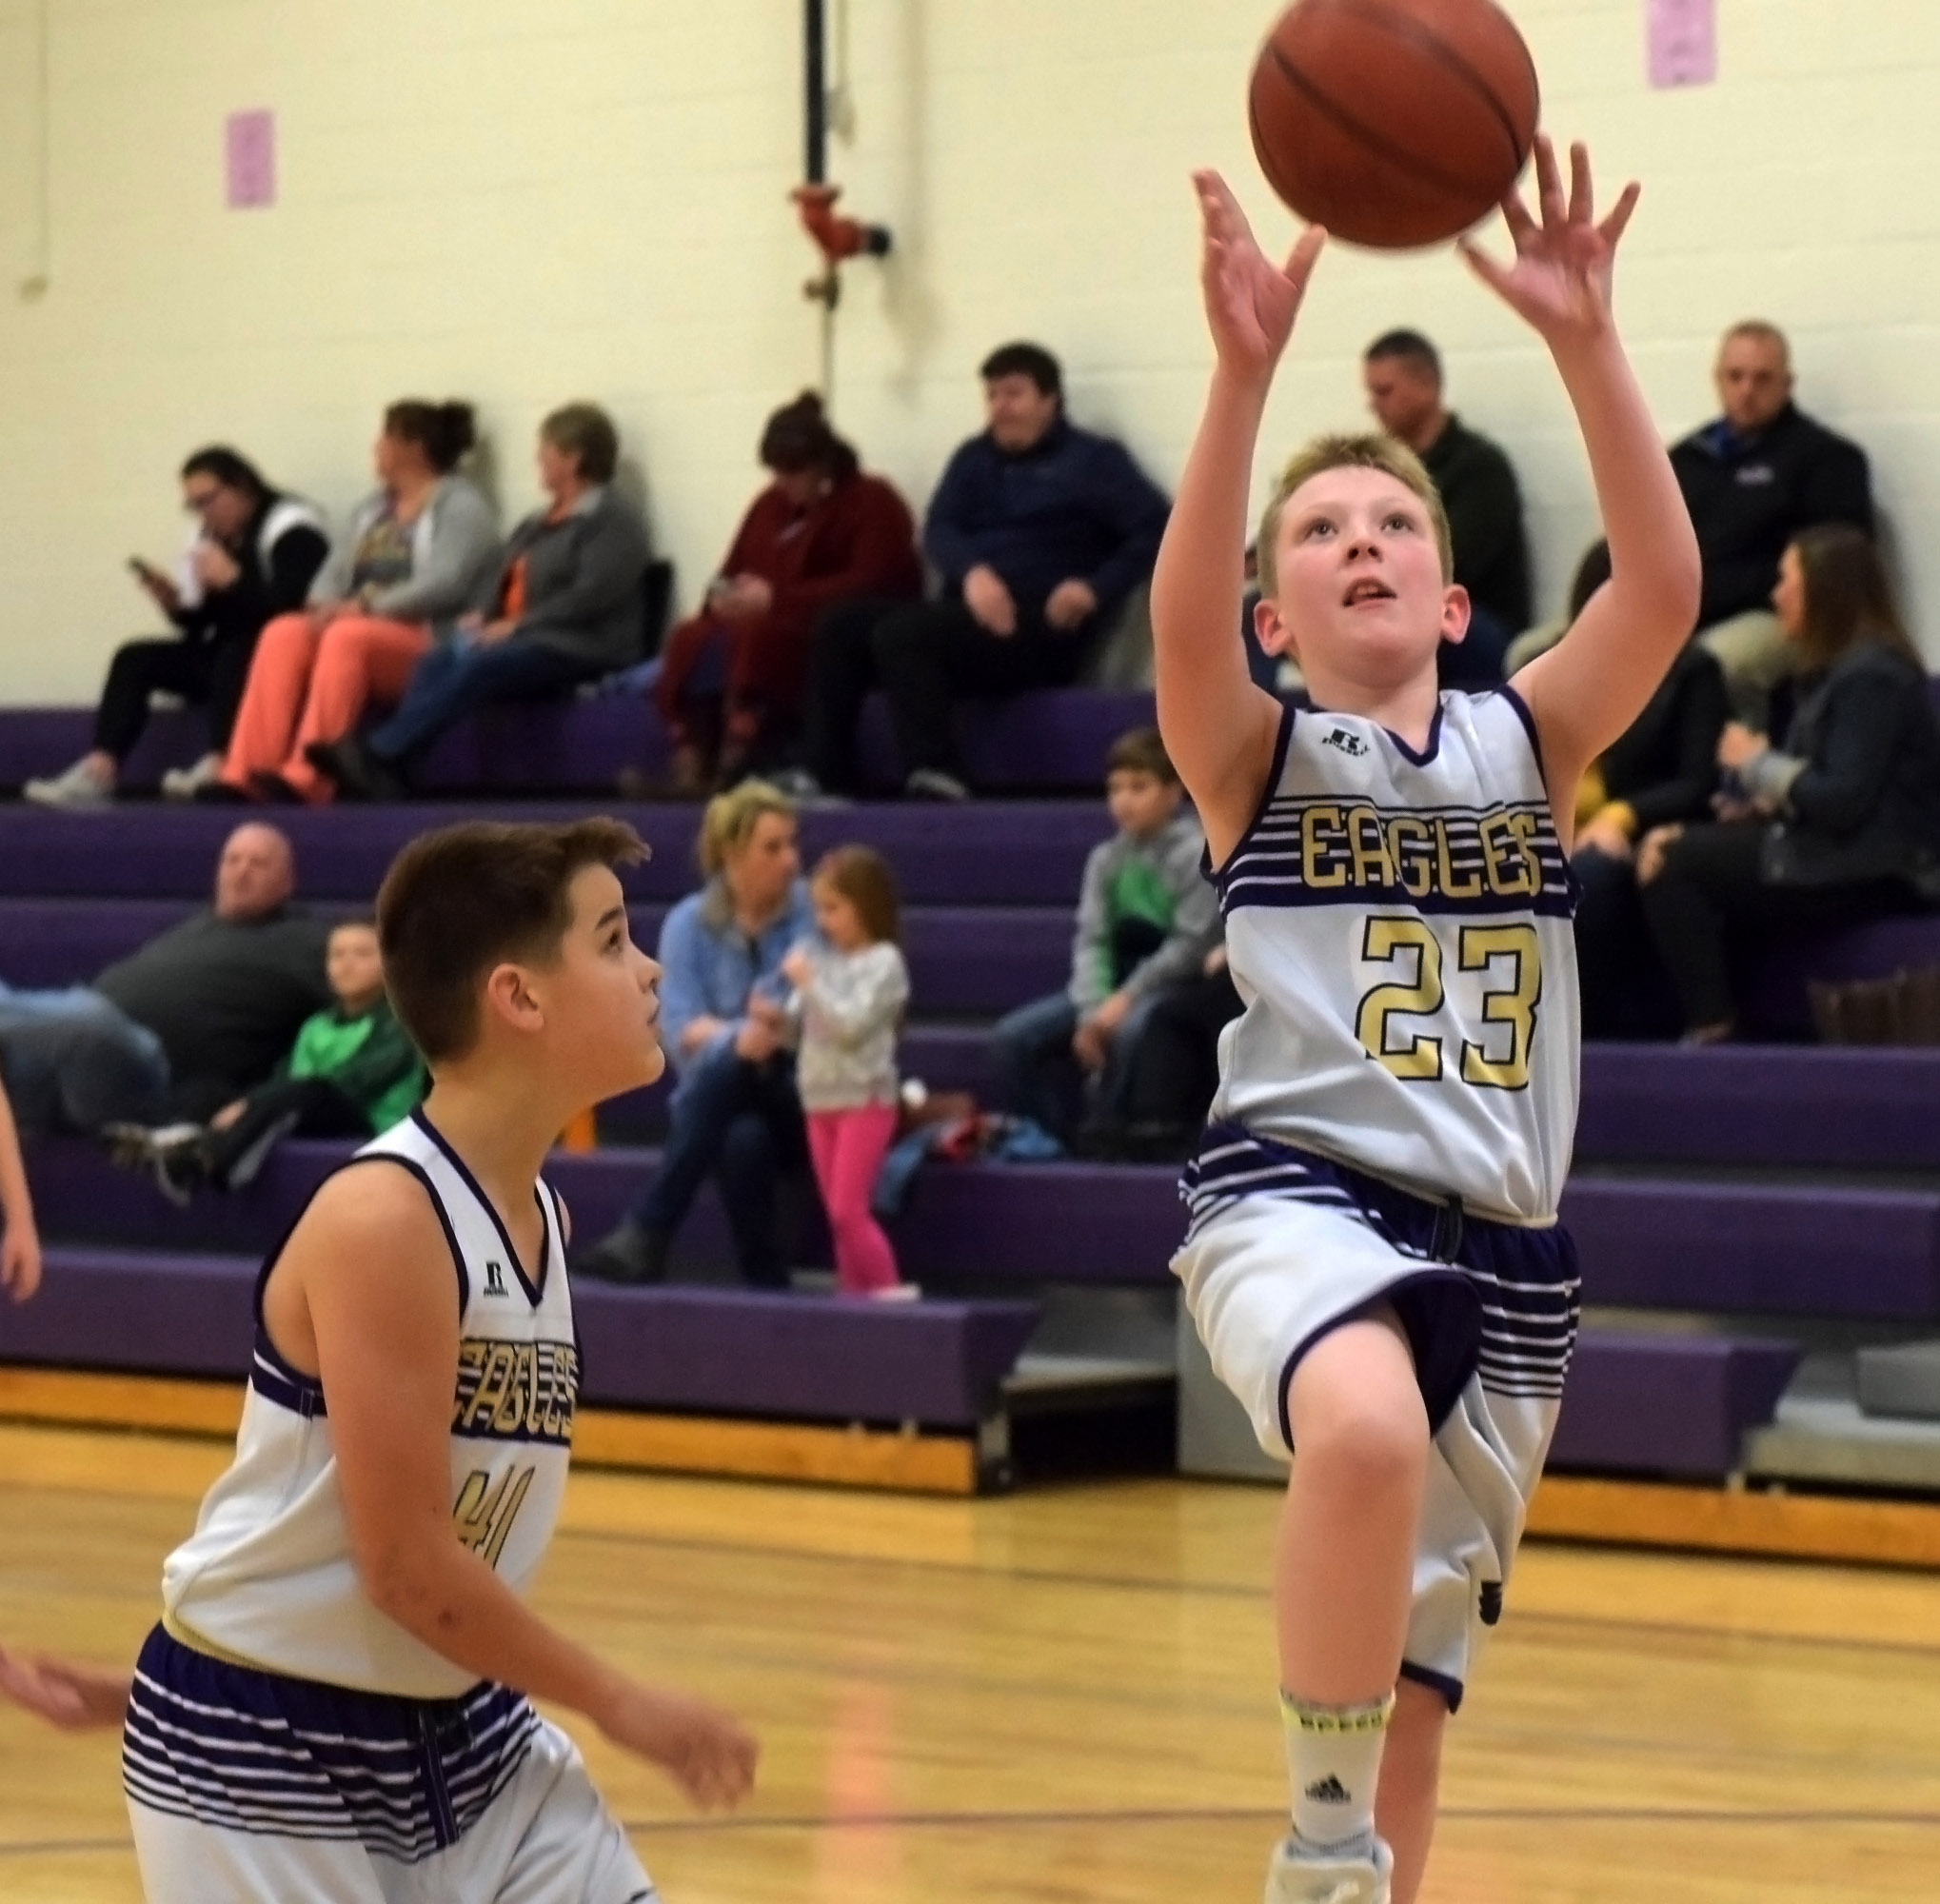 Campbellsville Elementary School fifth-grader Kaleb Miller shoots the ball.